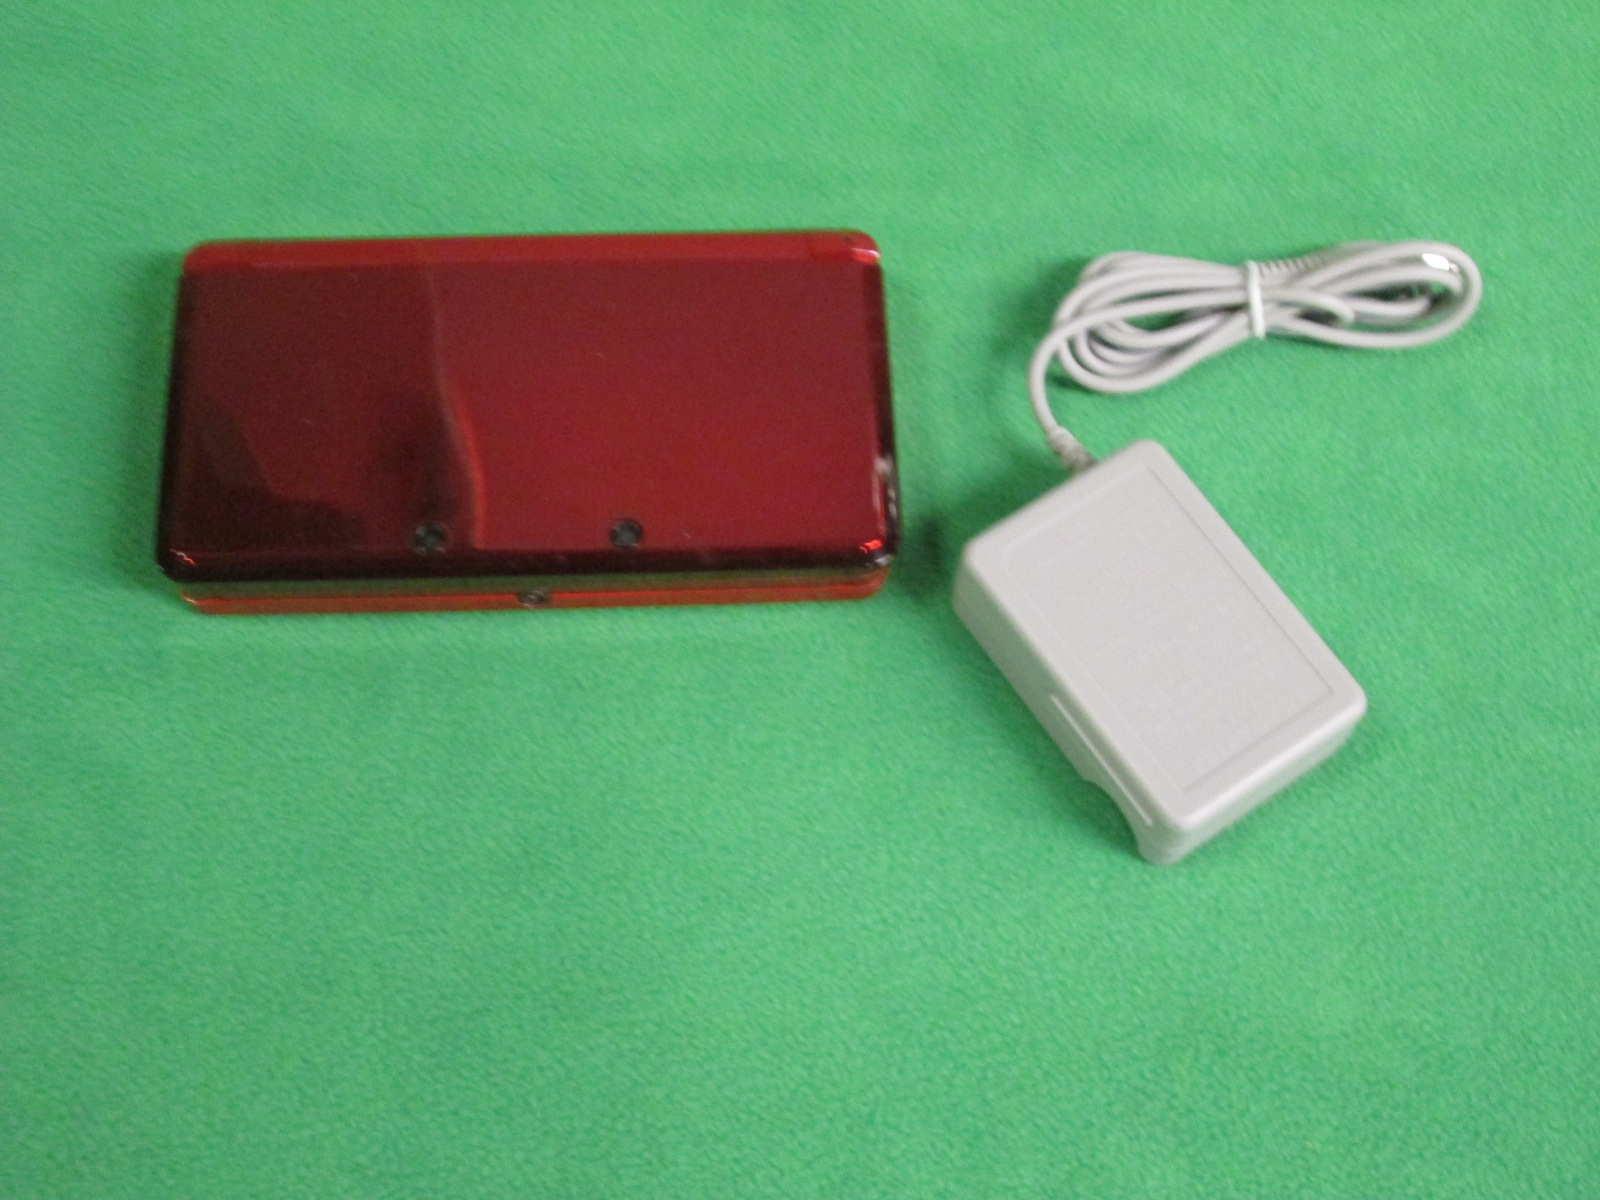 Image 1 of Nintendo 3DS Flame Red